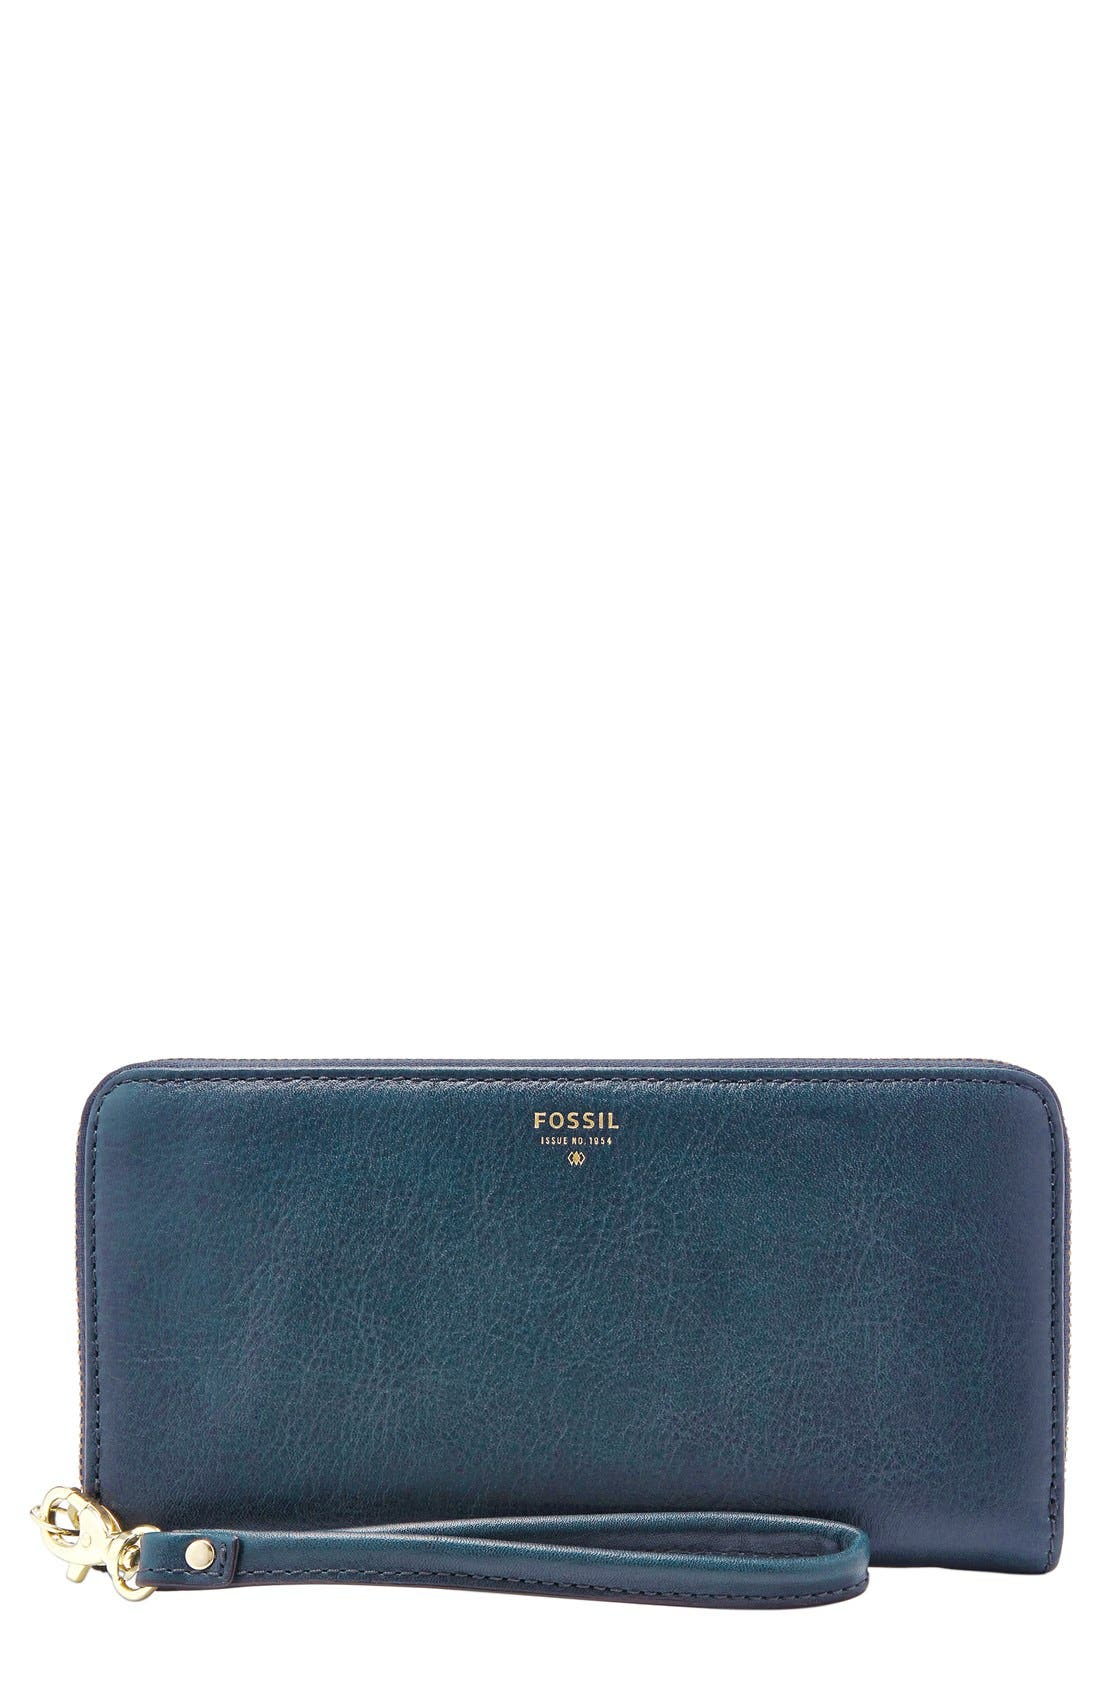 Alternate Image 1 Selected - Fossil 'Sydney' Zip Clutch Wallet